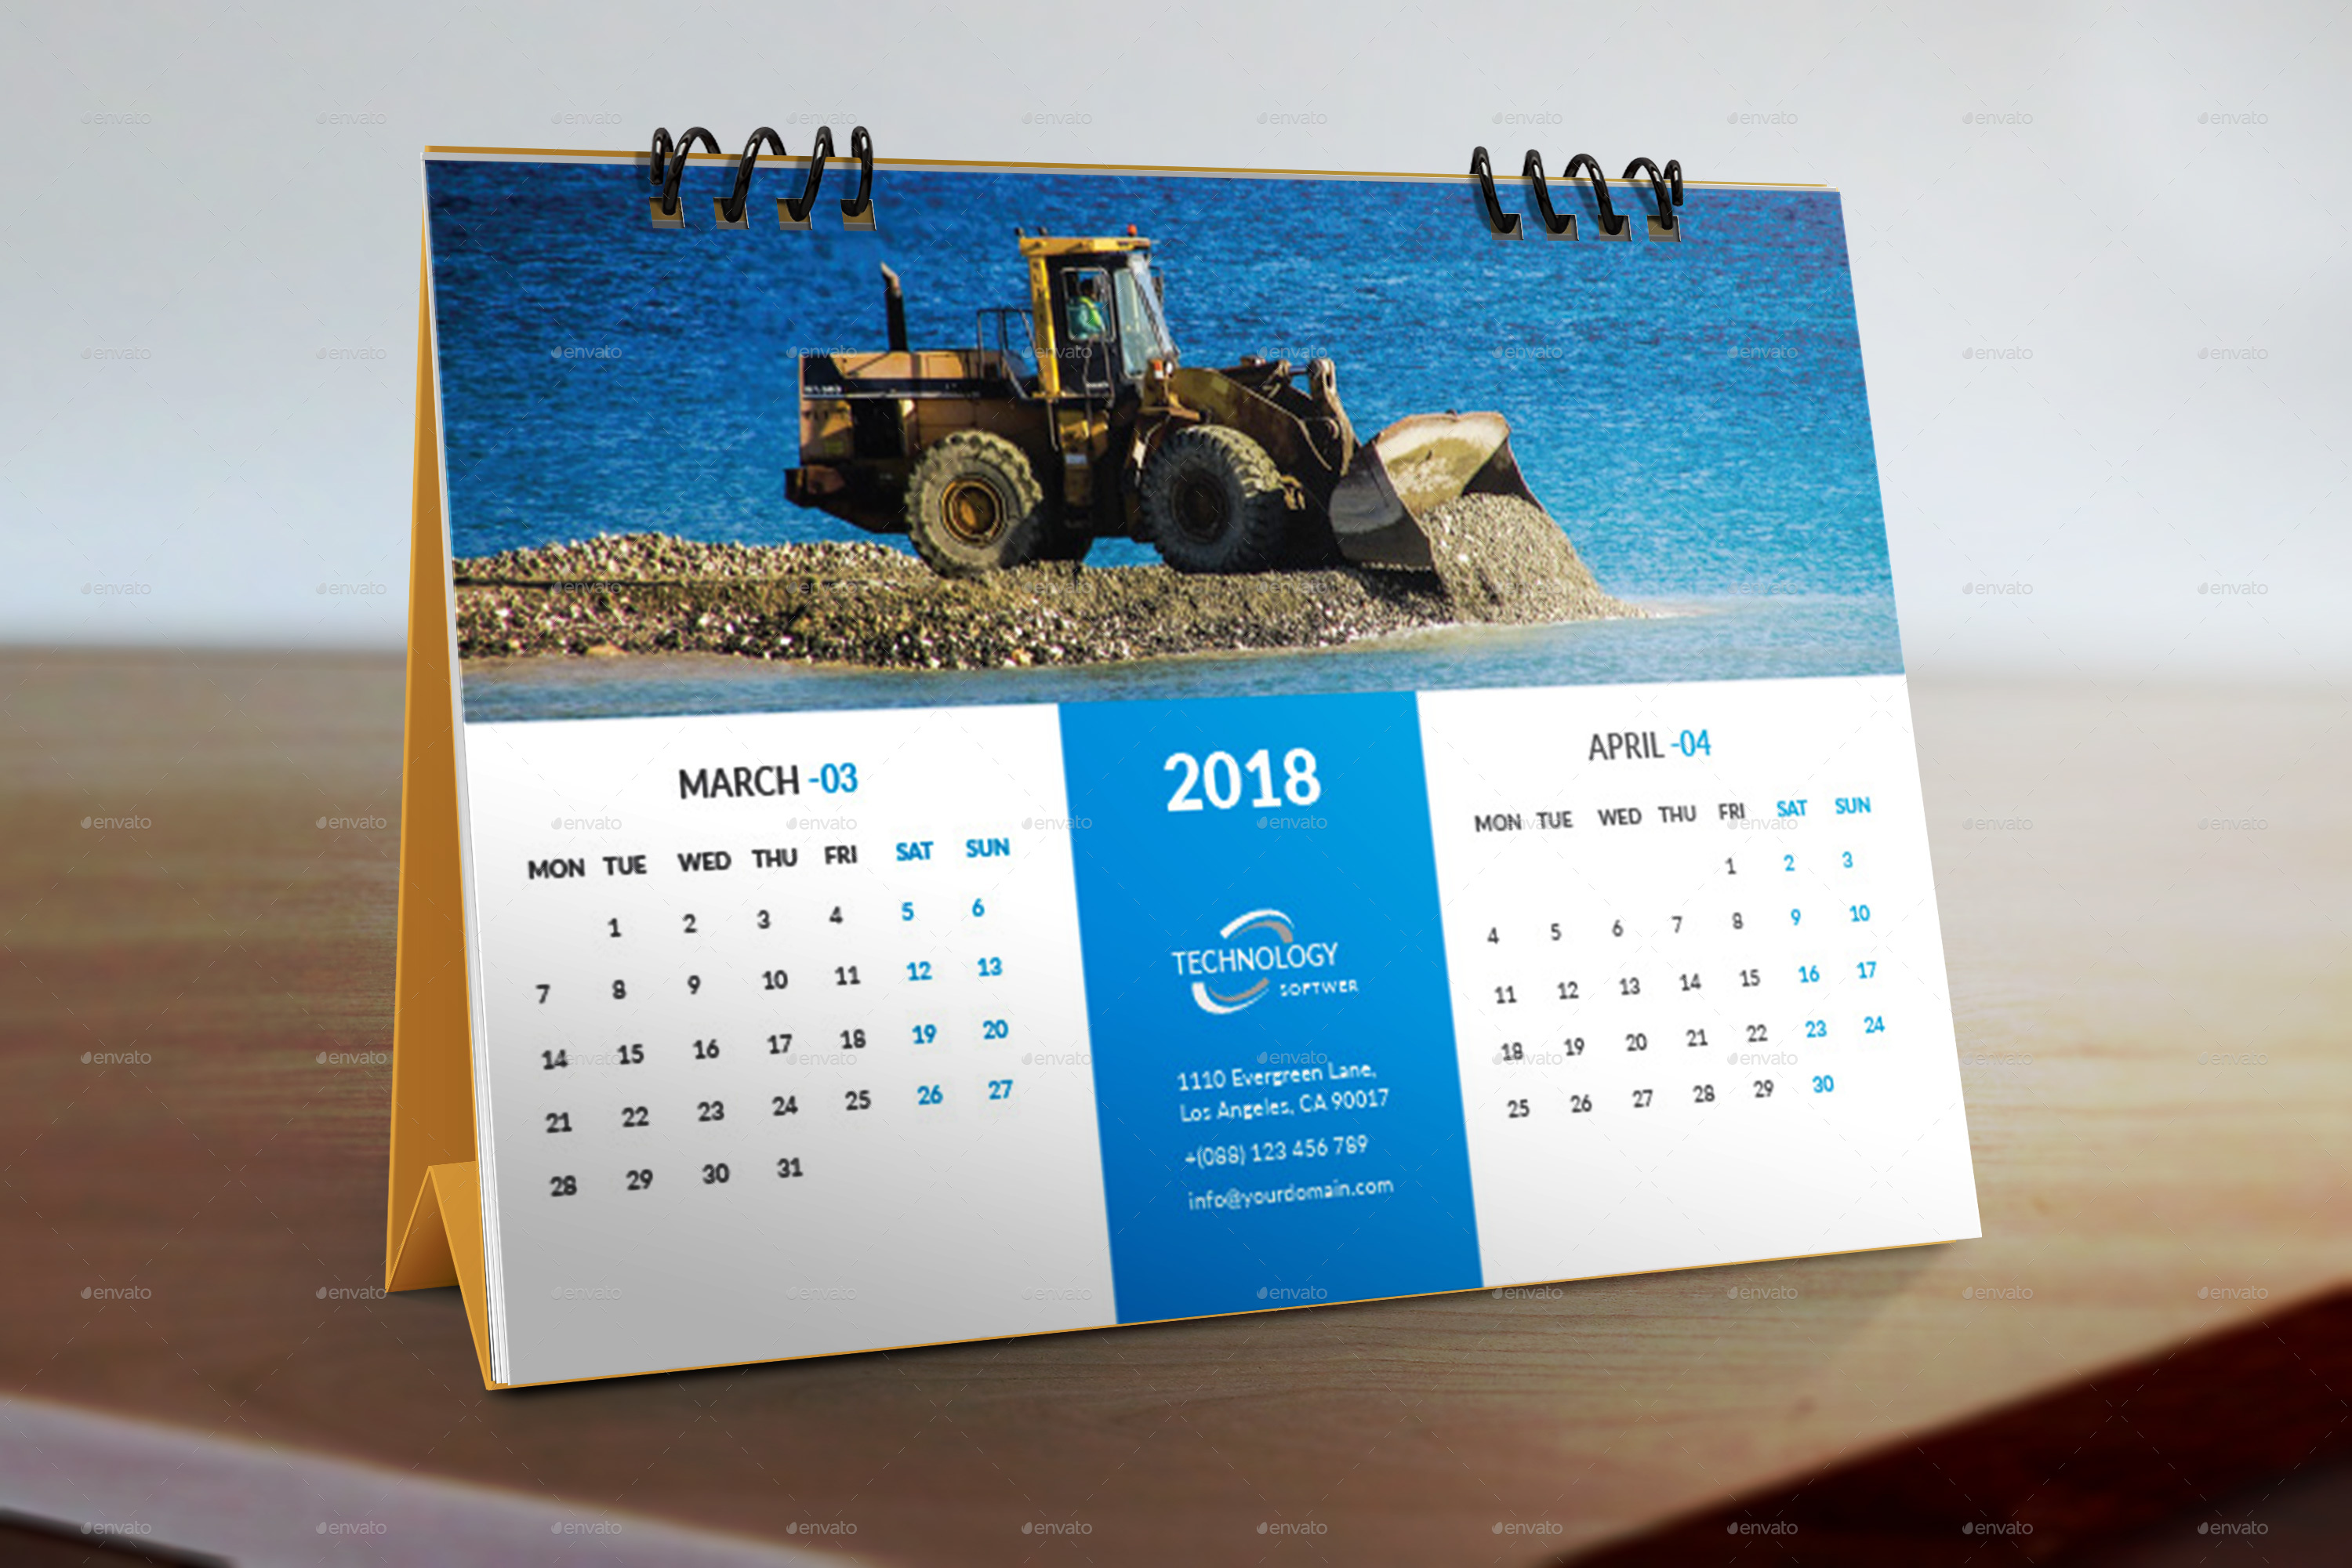 Desk Calendar 2018 by graphicstar10 | GraphicRiver